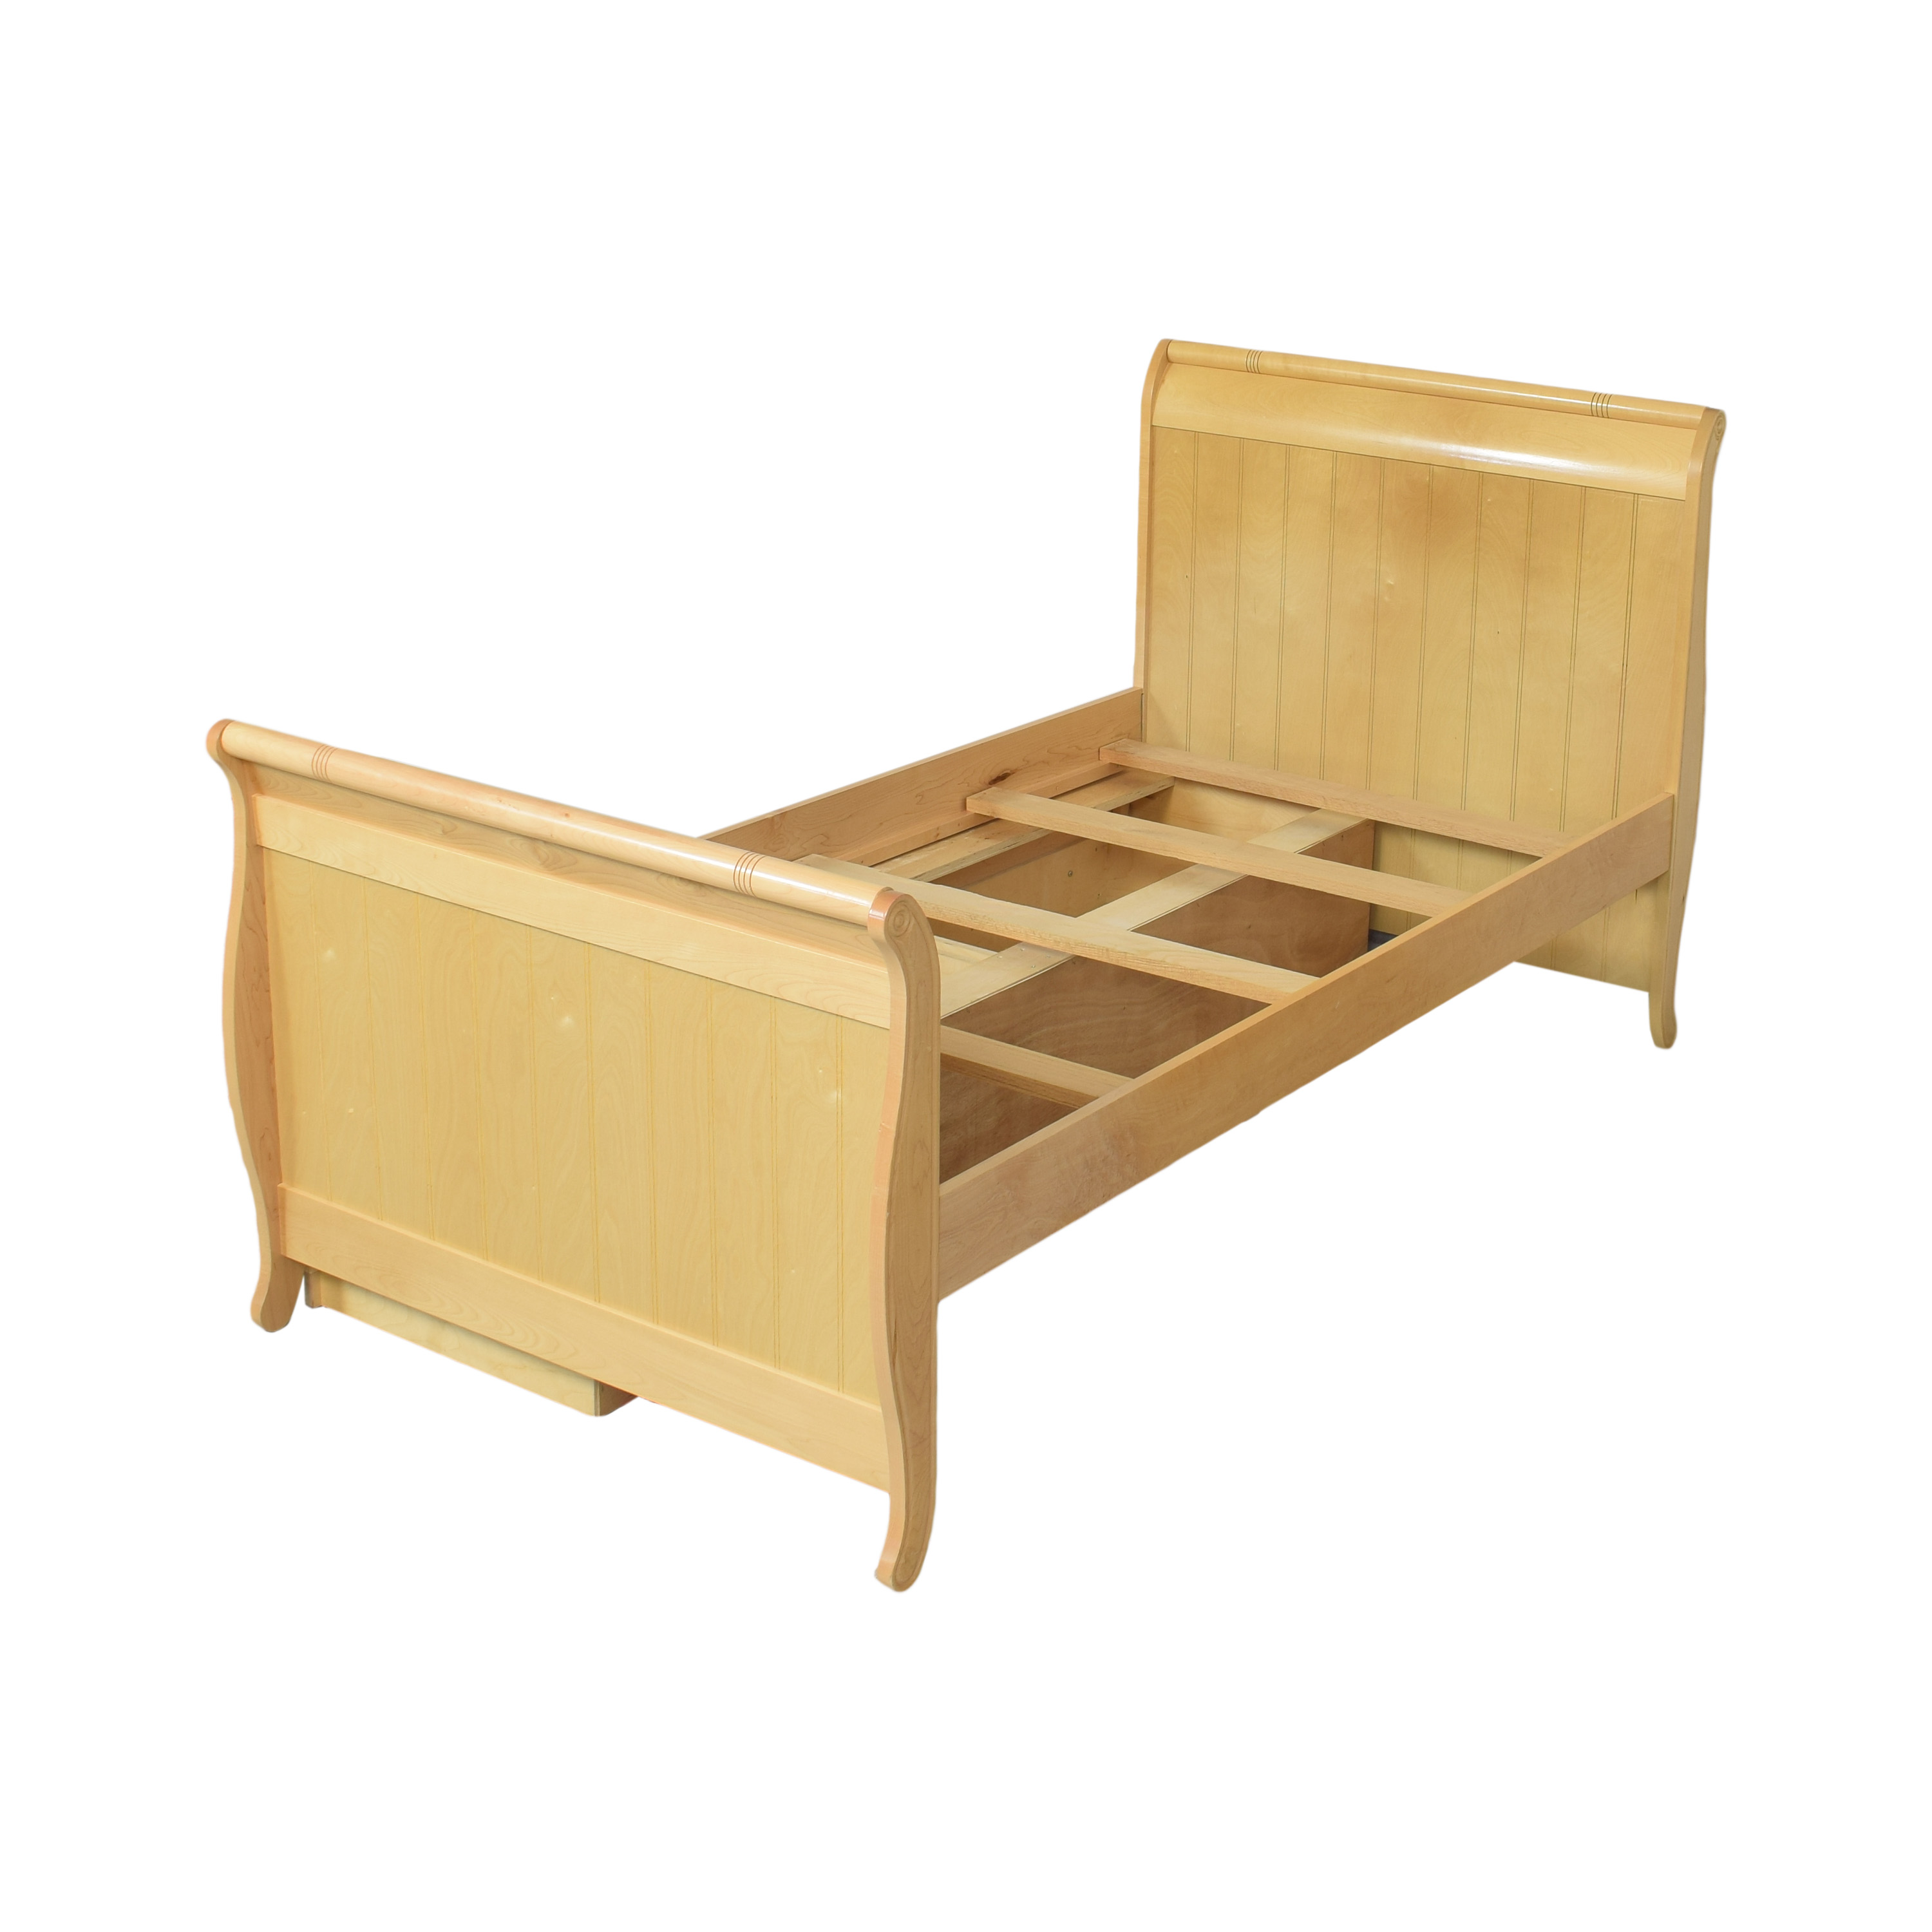 Stanley Furniture Stanley Furniture Young America Twin Sleigh Bed with Storage dimensions